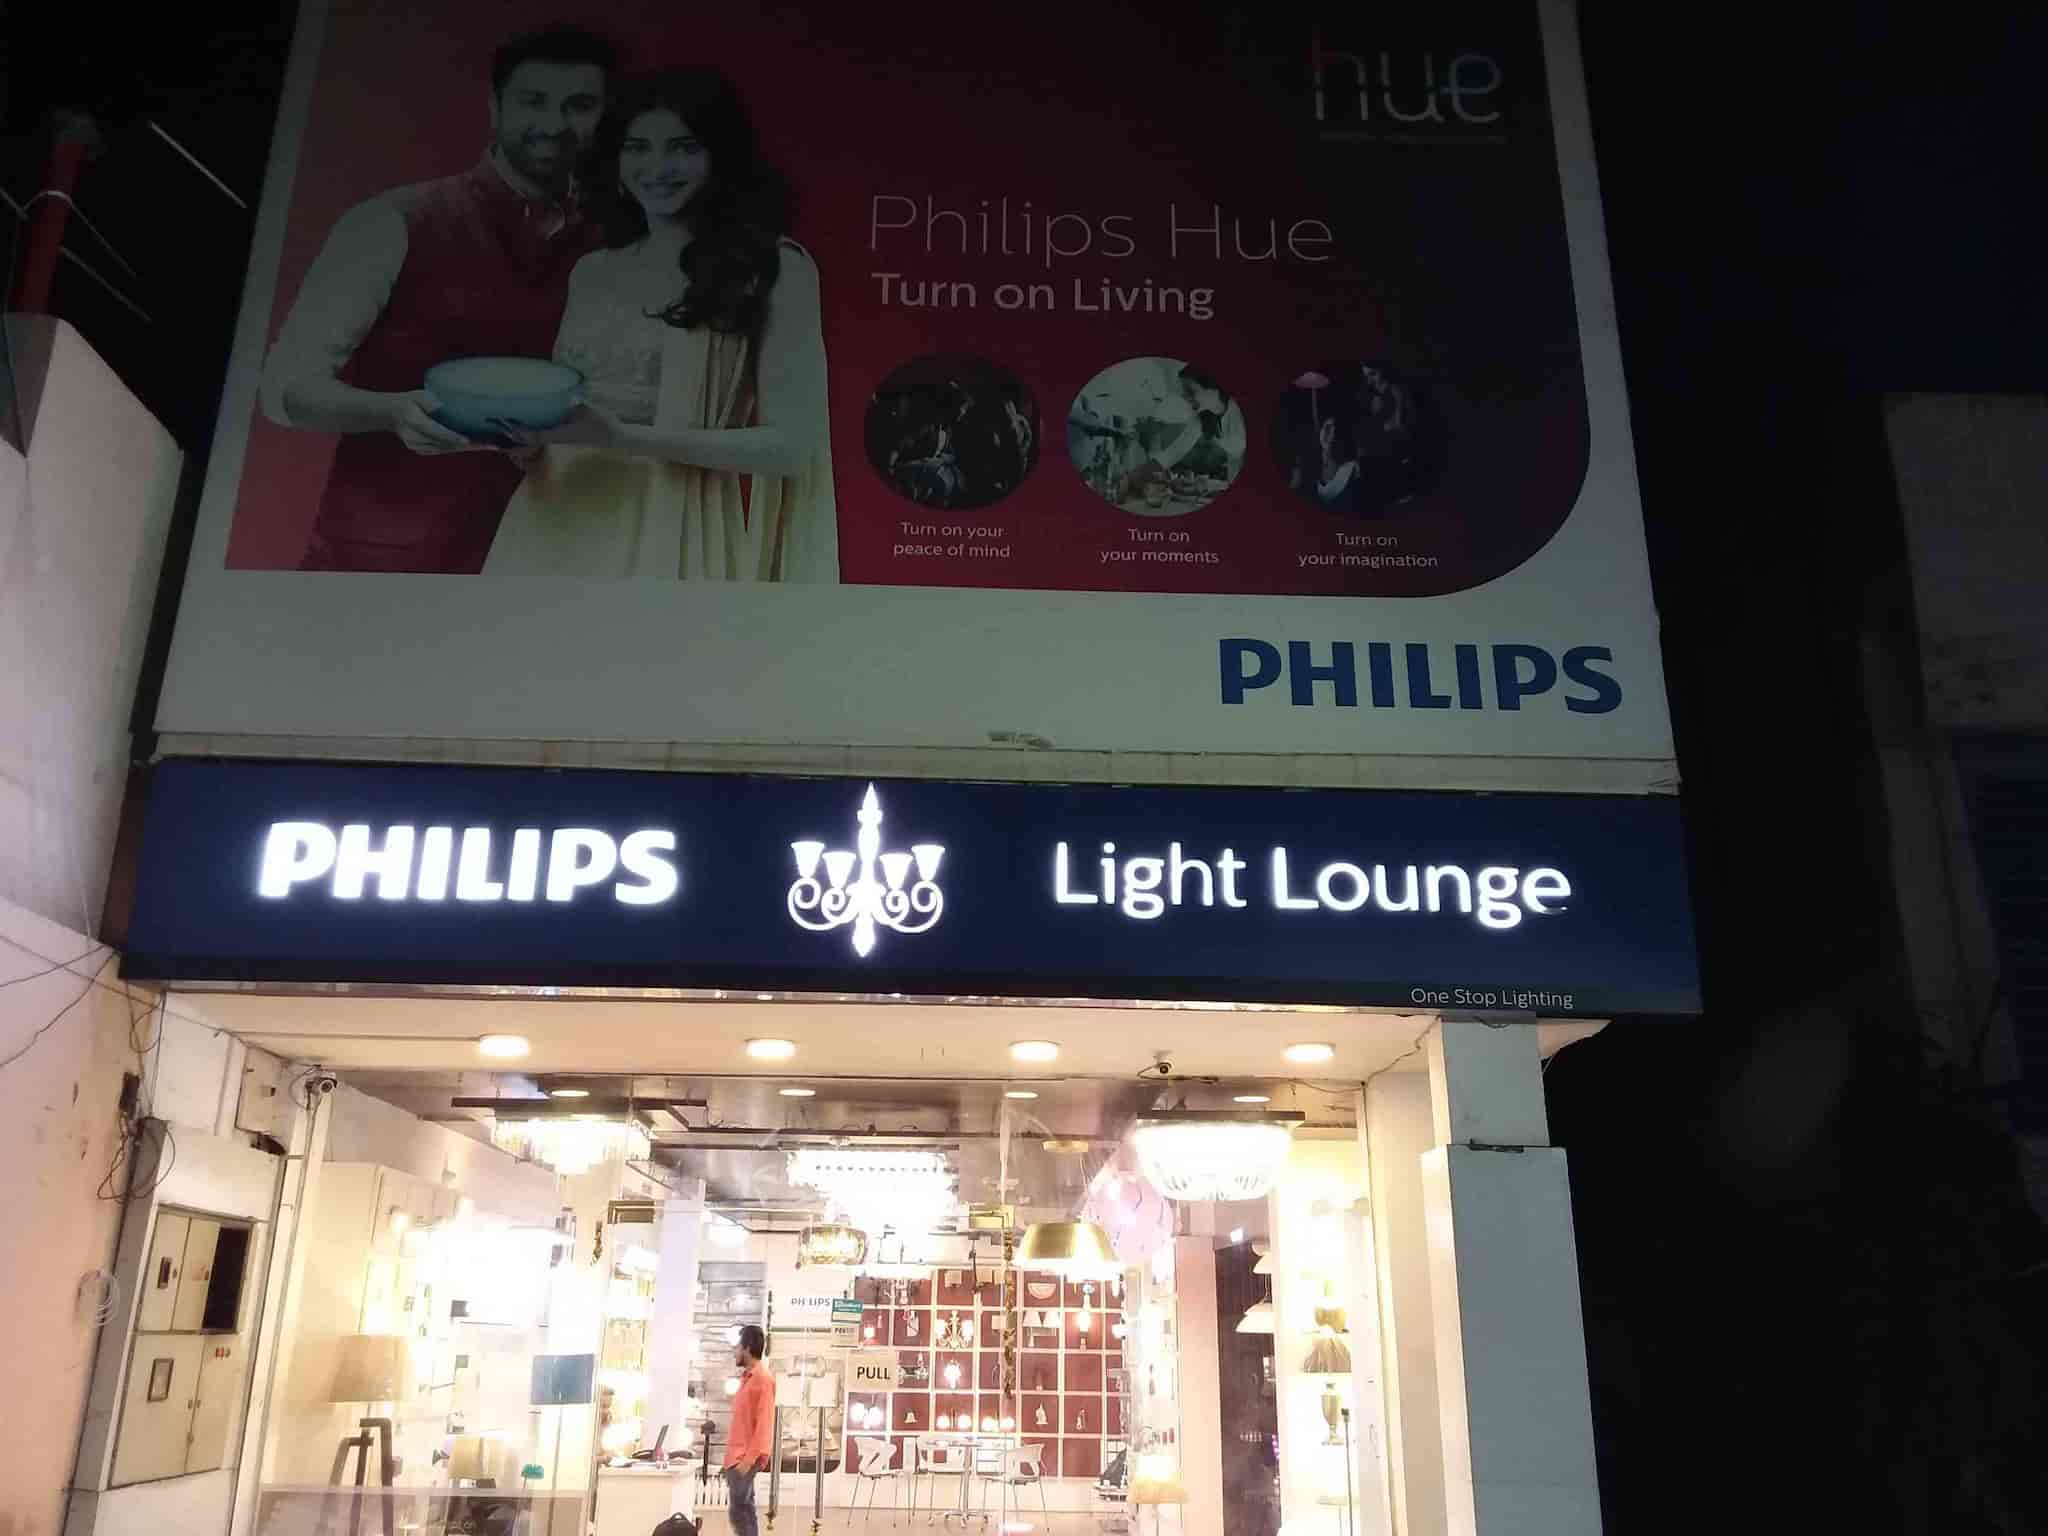 ... One Stop Lighting Photos Rajouri Garden Delhi - LED Light Dealers ... & One Stop Lighting Photos Rajouri Garden Delhi- Pictures u0026 Images ...